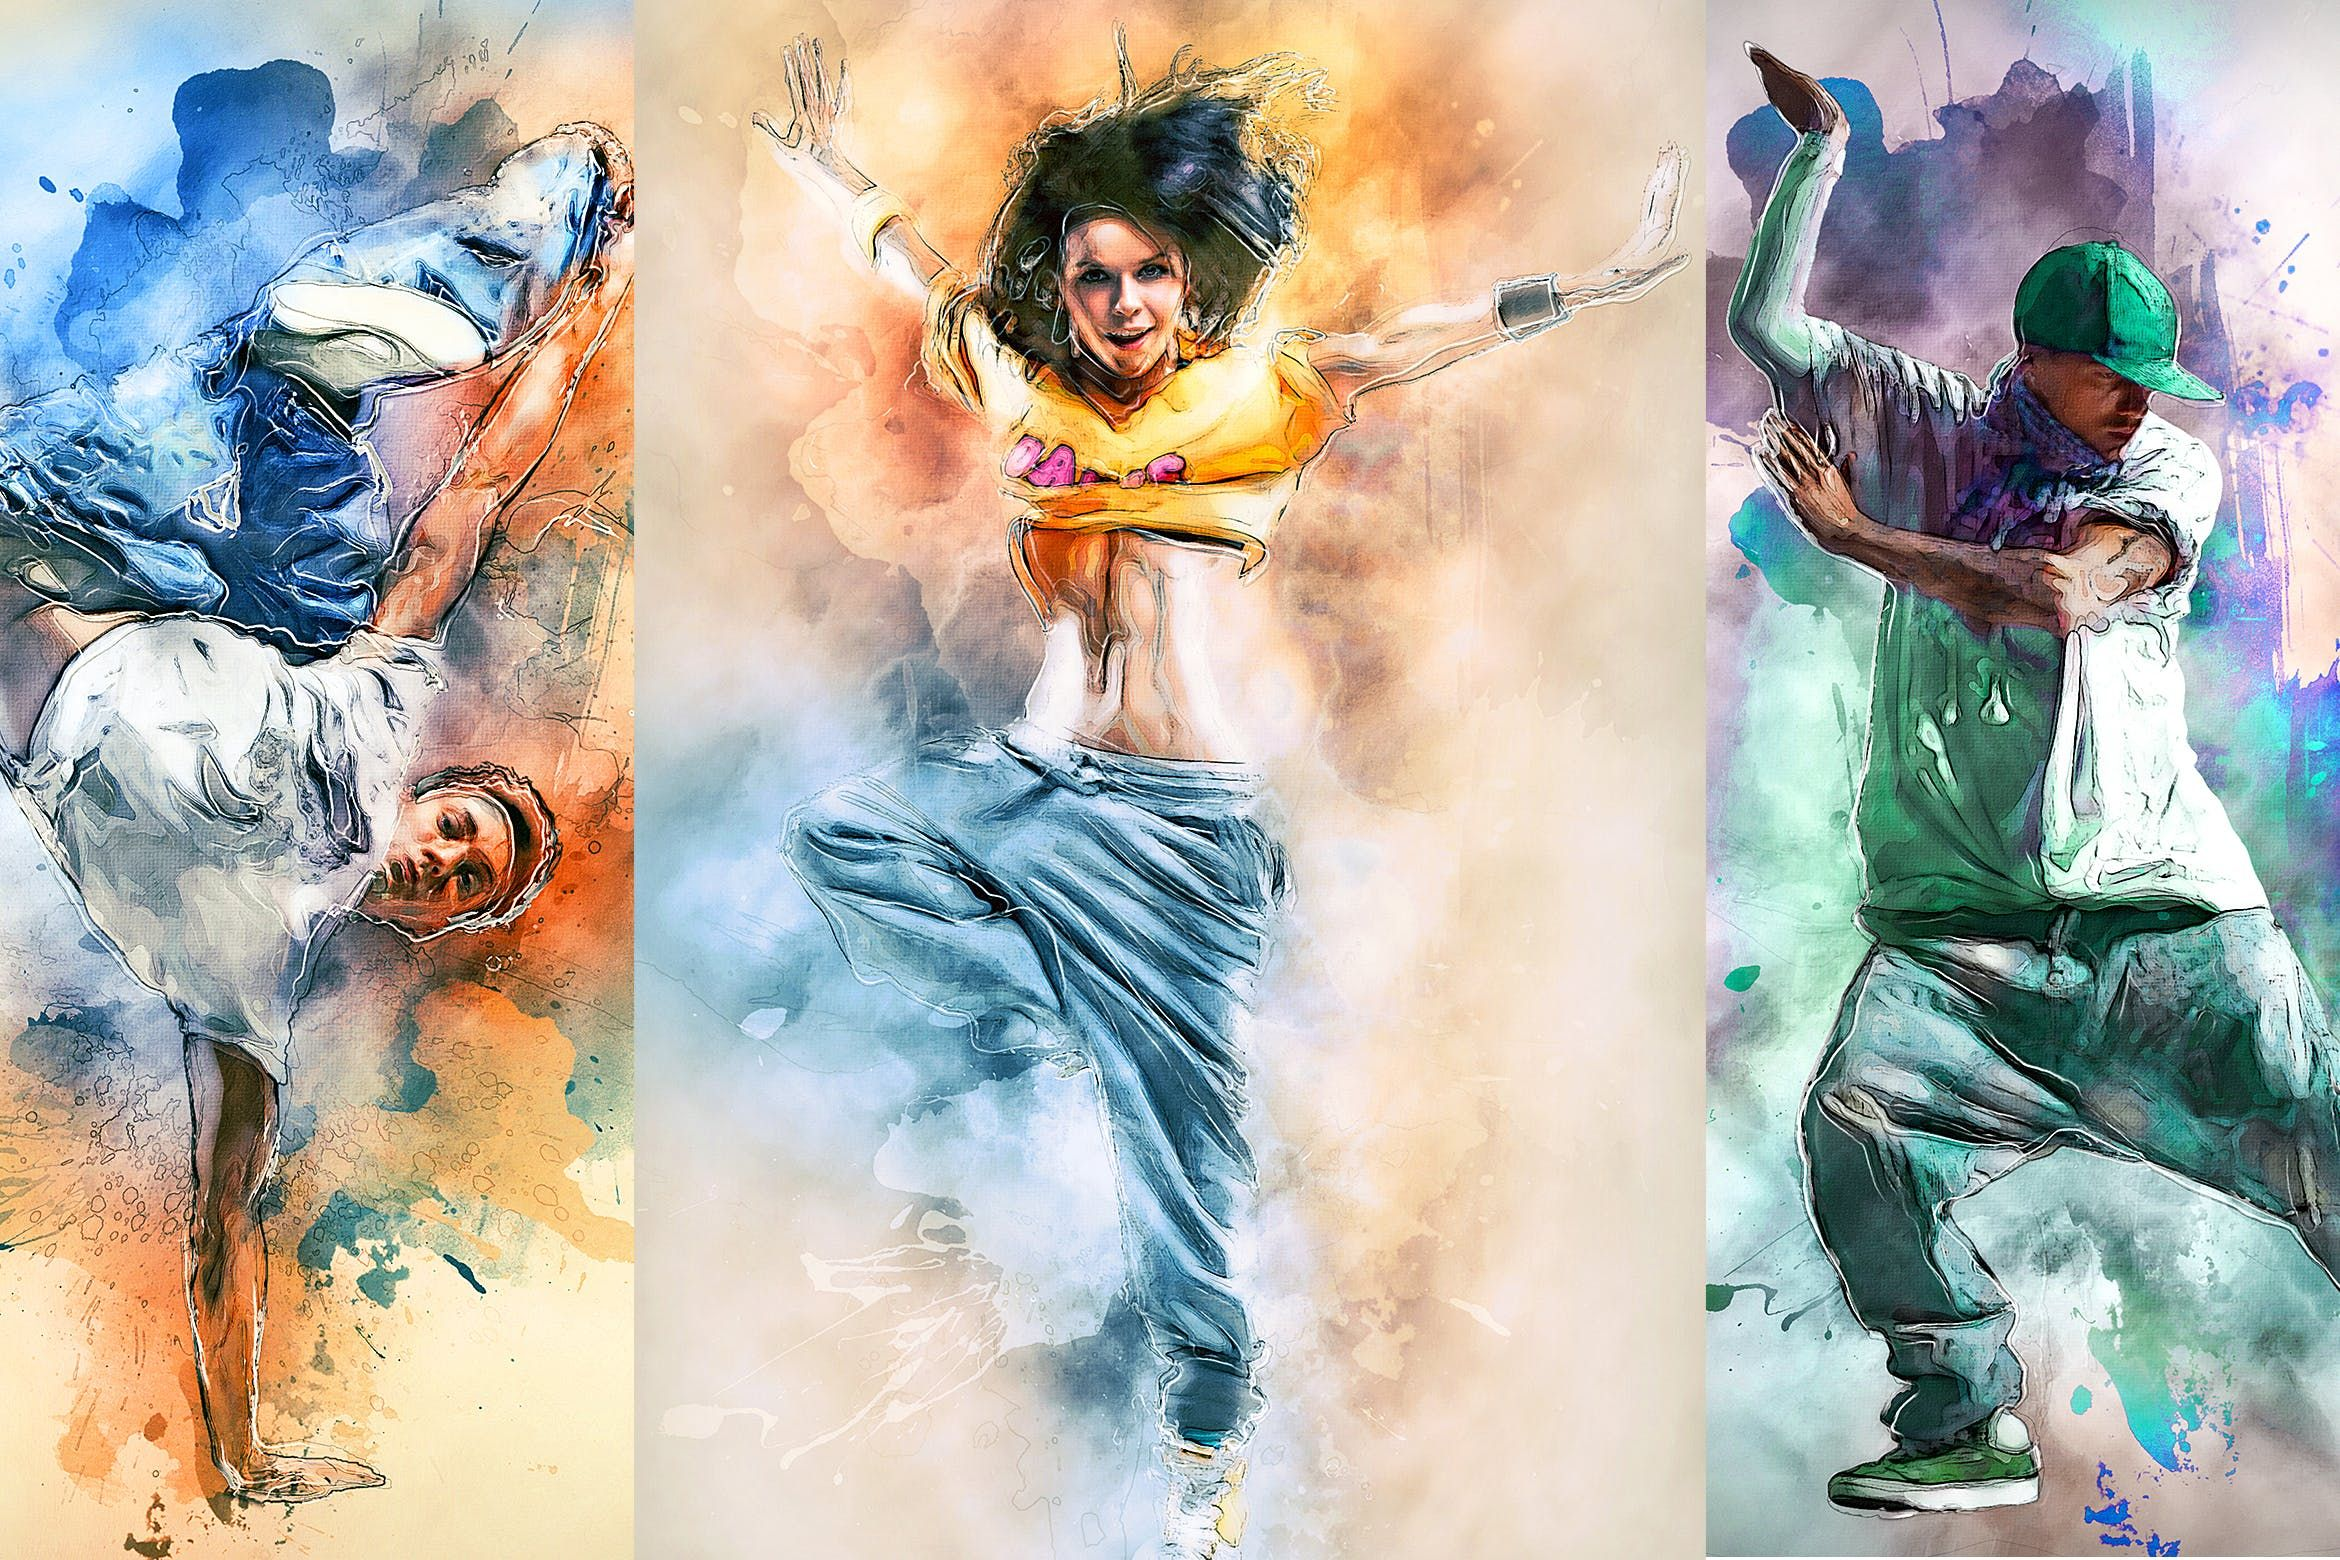 Watercolor Photoshop Action By Sevenstyles On Watercolor